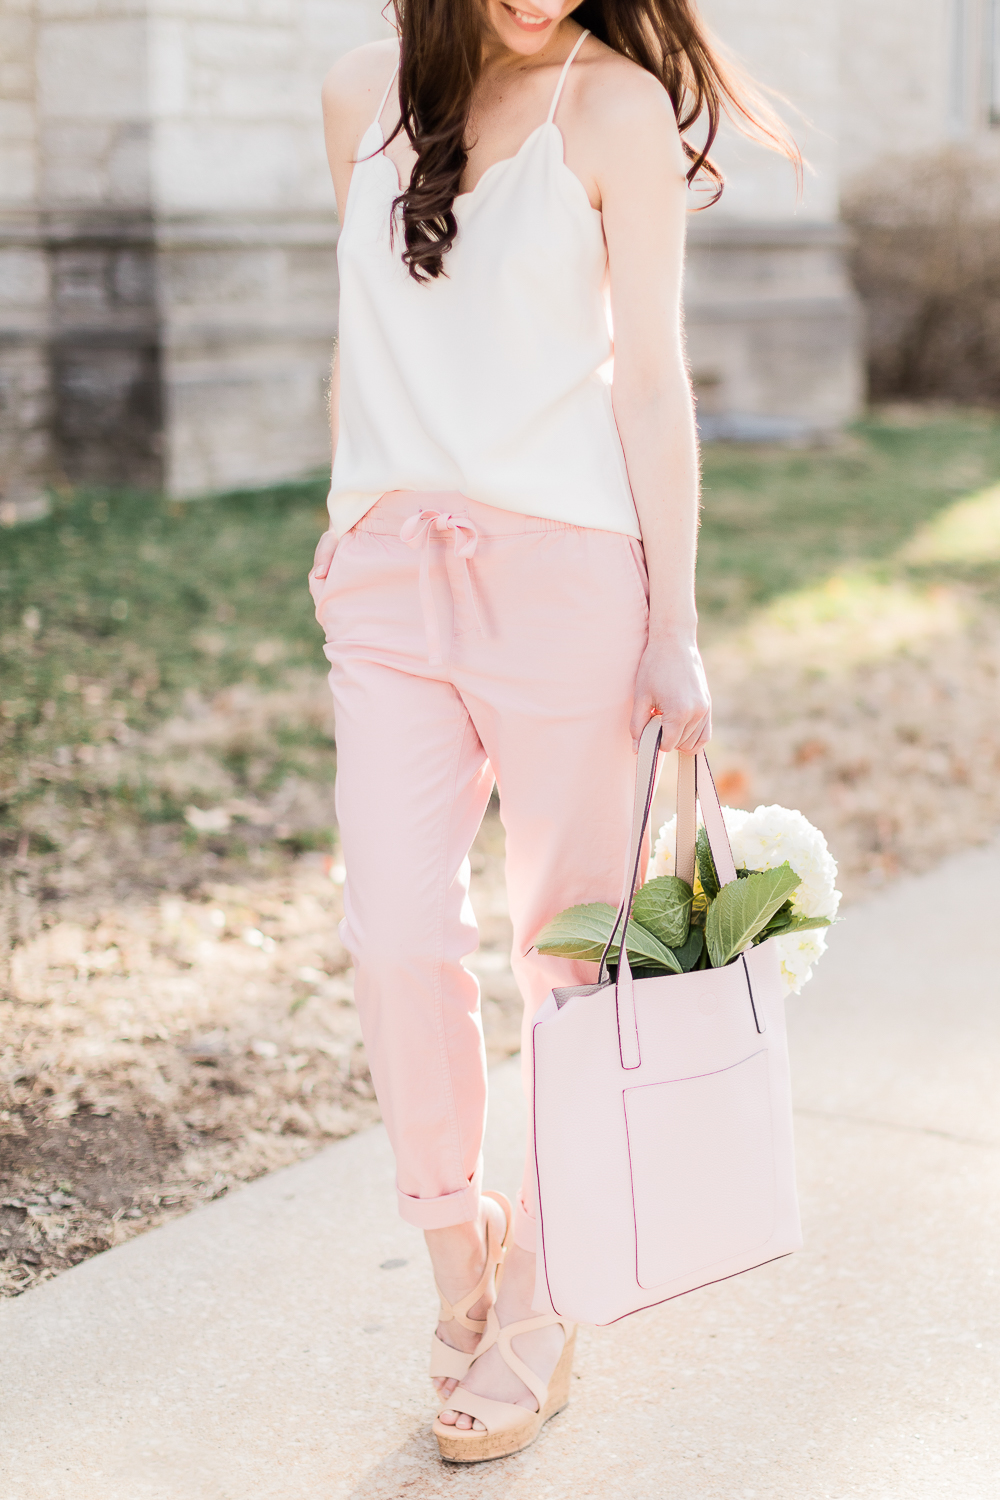 How to Style Chino Pants for Date Night by popular affordable fashion blogger Stephanie Ziajka from Diary of a Debutante, how to wear chino pants, Old Navy Pull-On Anytime Chinos for Women, J.Crew Factory Scalloped Cami Top, Walmart Time and Tru Leigh Tote